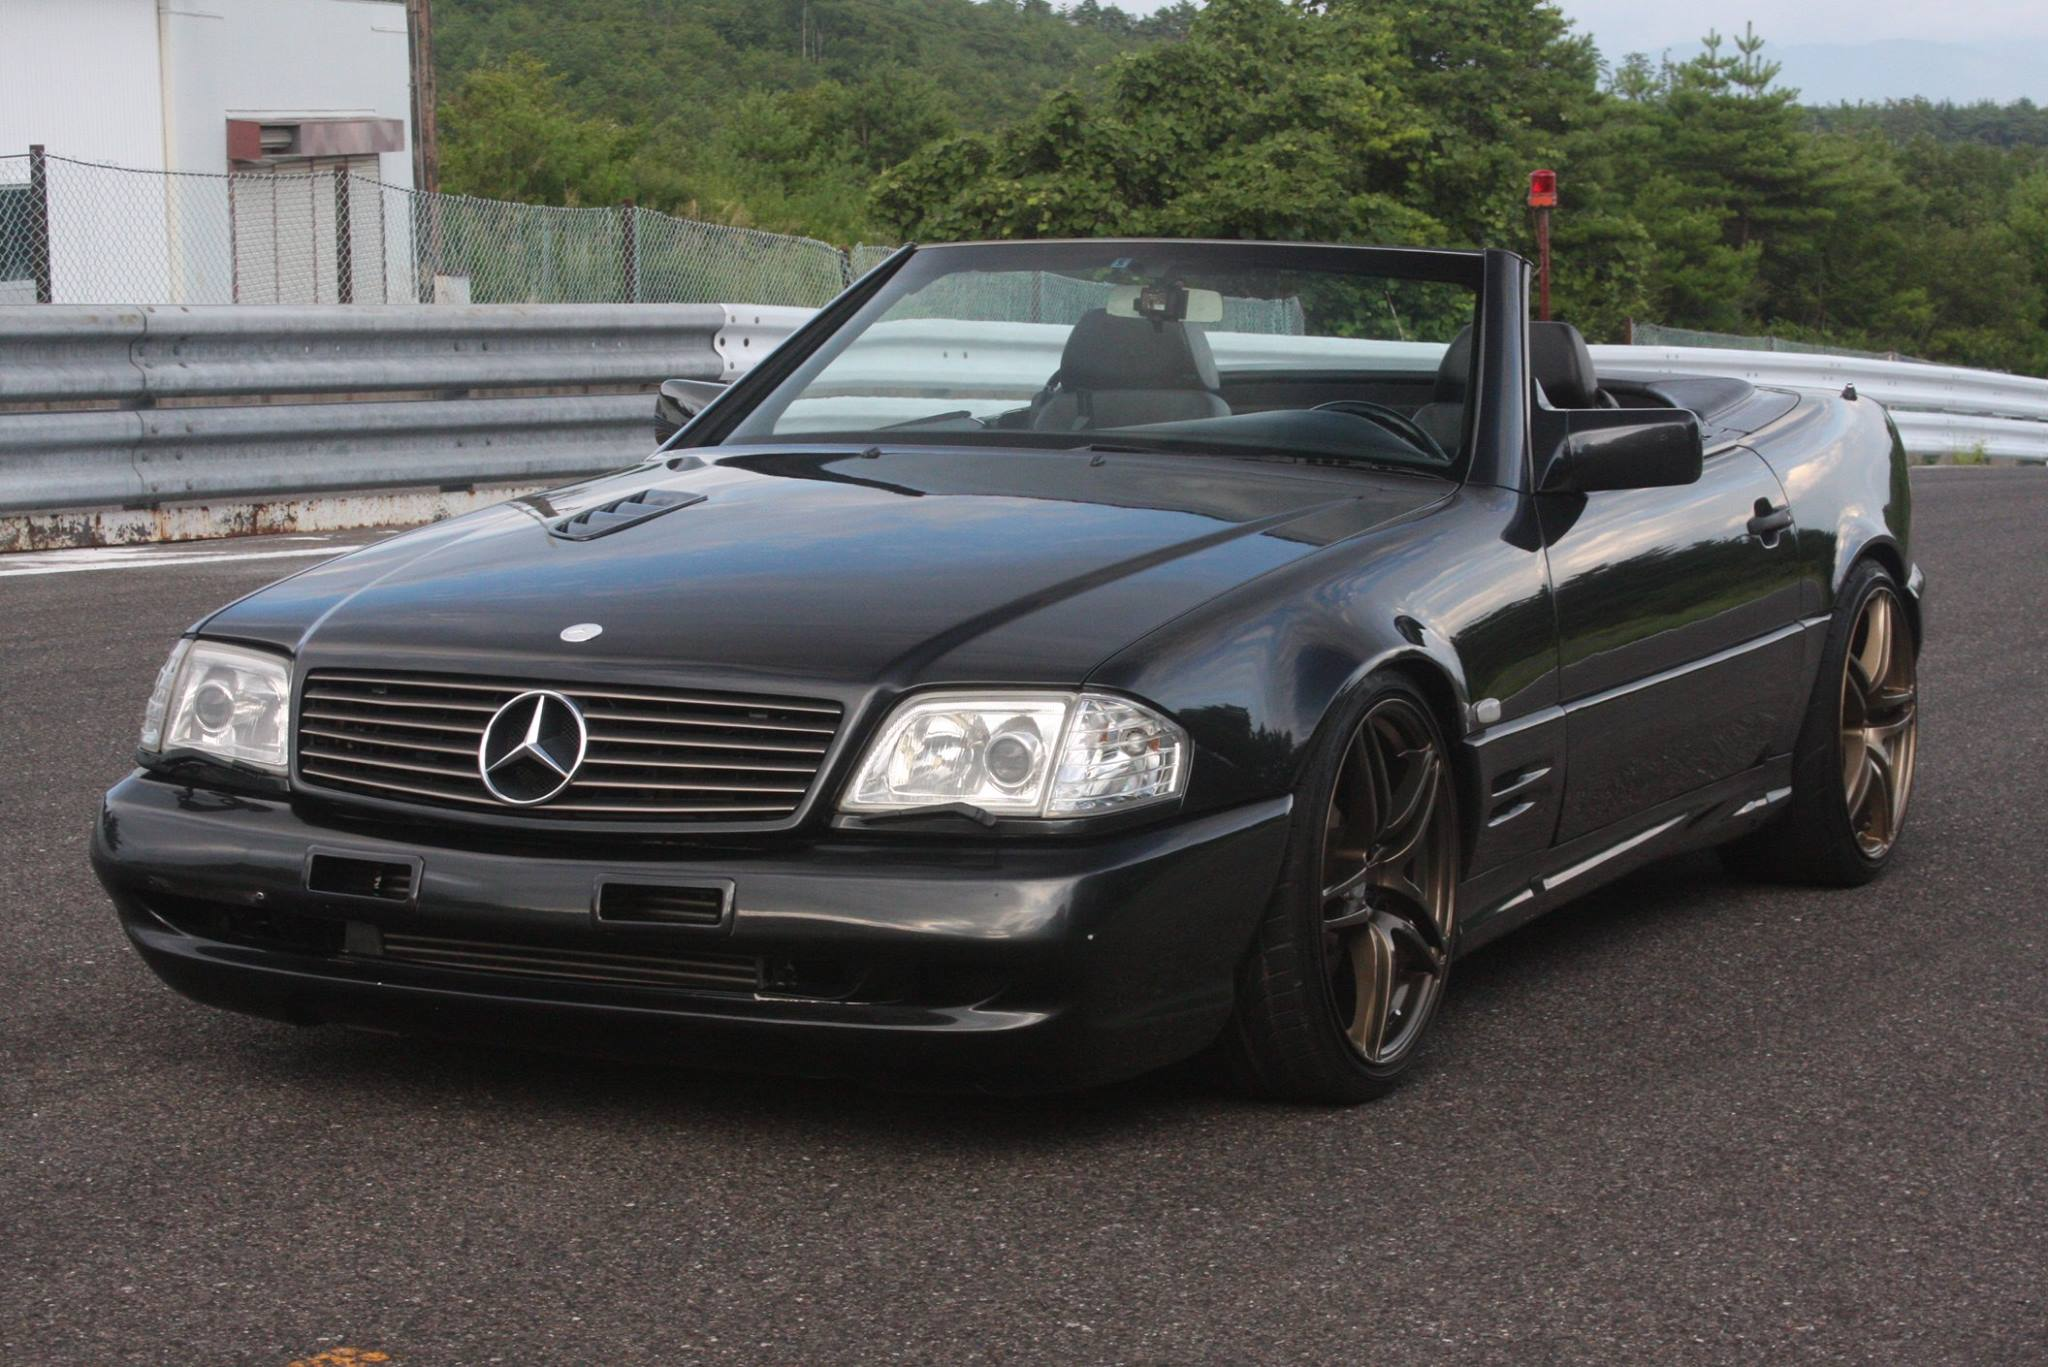 1991 Mercedes 500SL with a 2JZ GTE 01 1991 mercedes 500sl with a 2jz gte engine swap depot  at creativeand.co